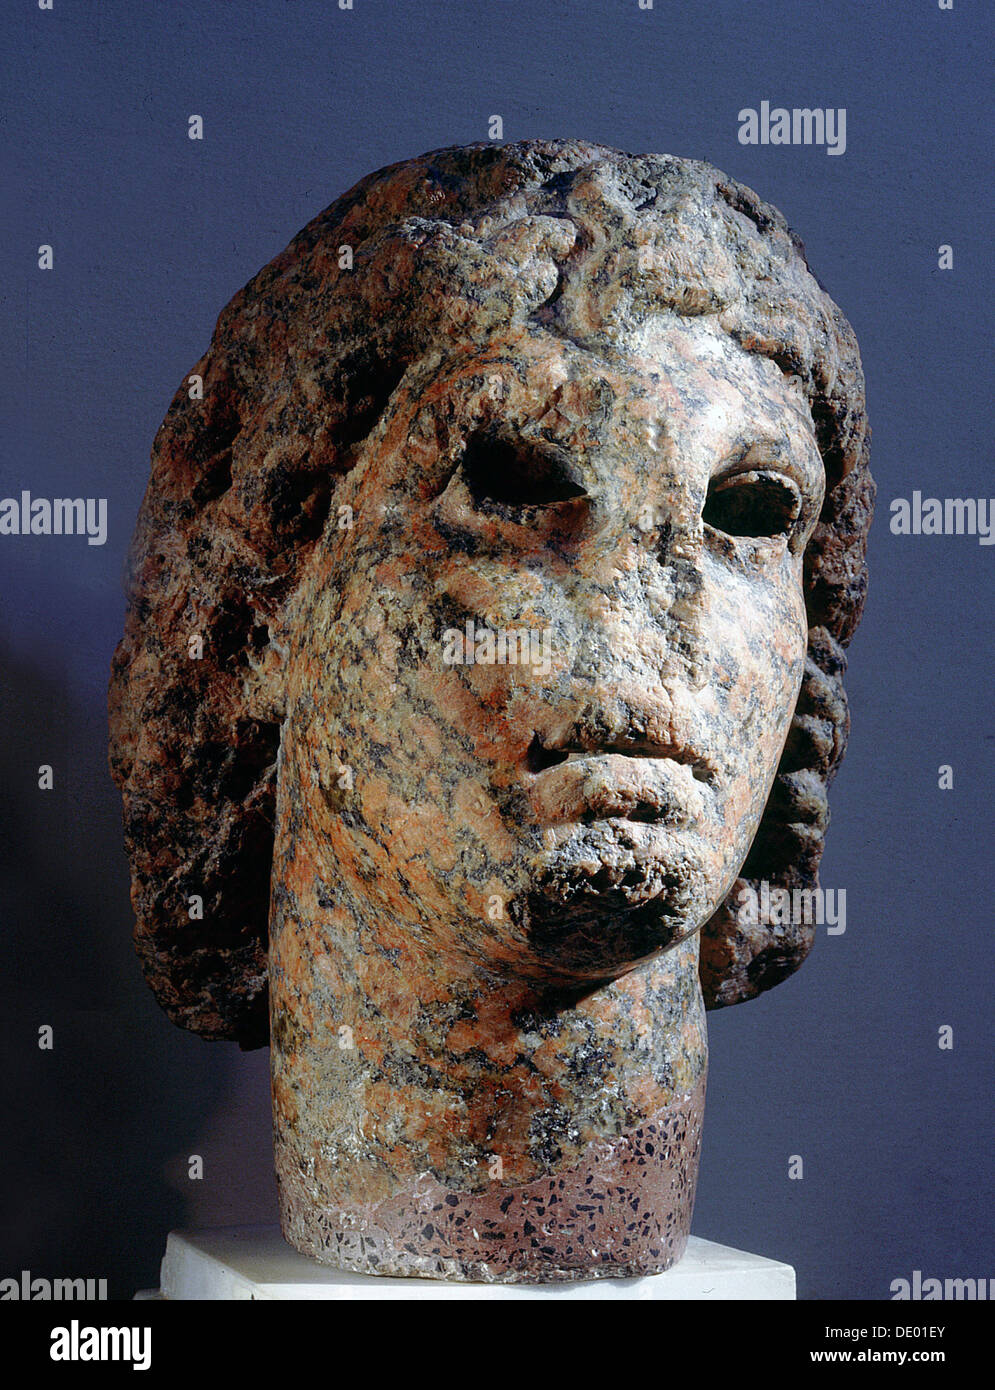 Portrait bust of alexander the great ancient egyptian ptolemaic portrait bust of alexander the great ancient egyptian ptolemaic period c305 30 bc artist werner forman kristyandbryce Choice Image